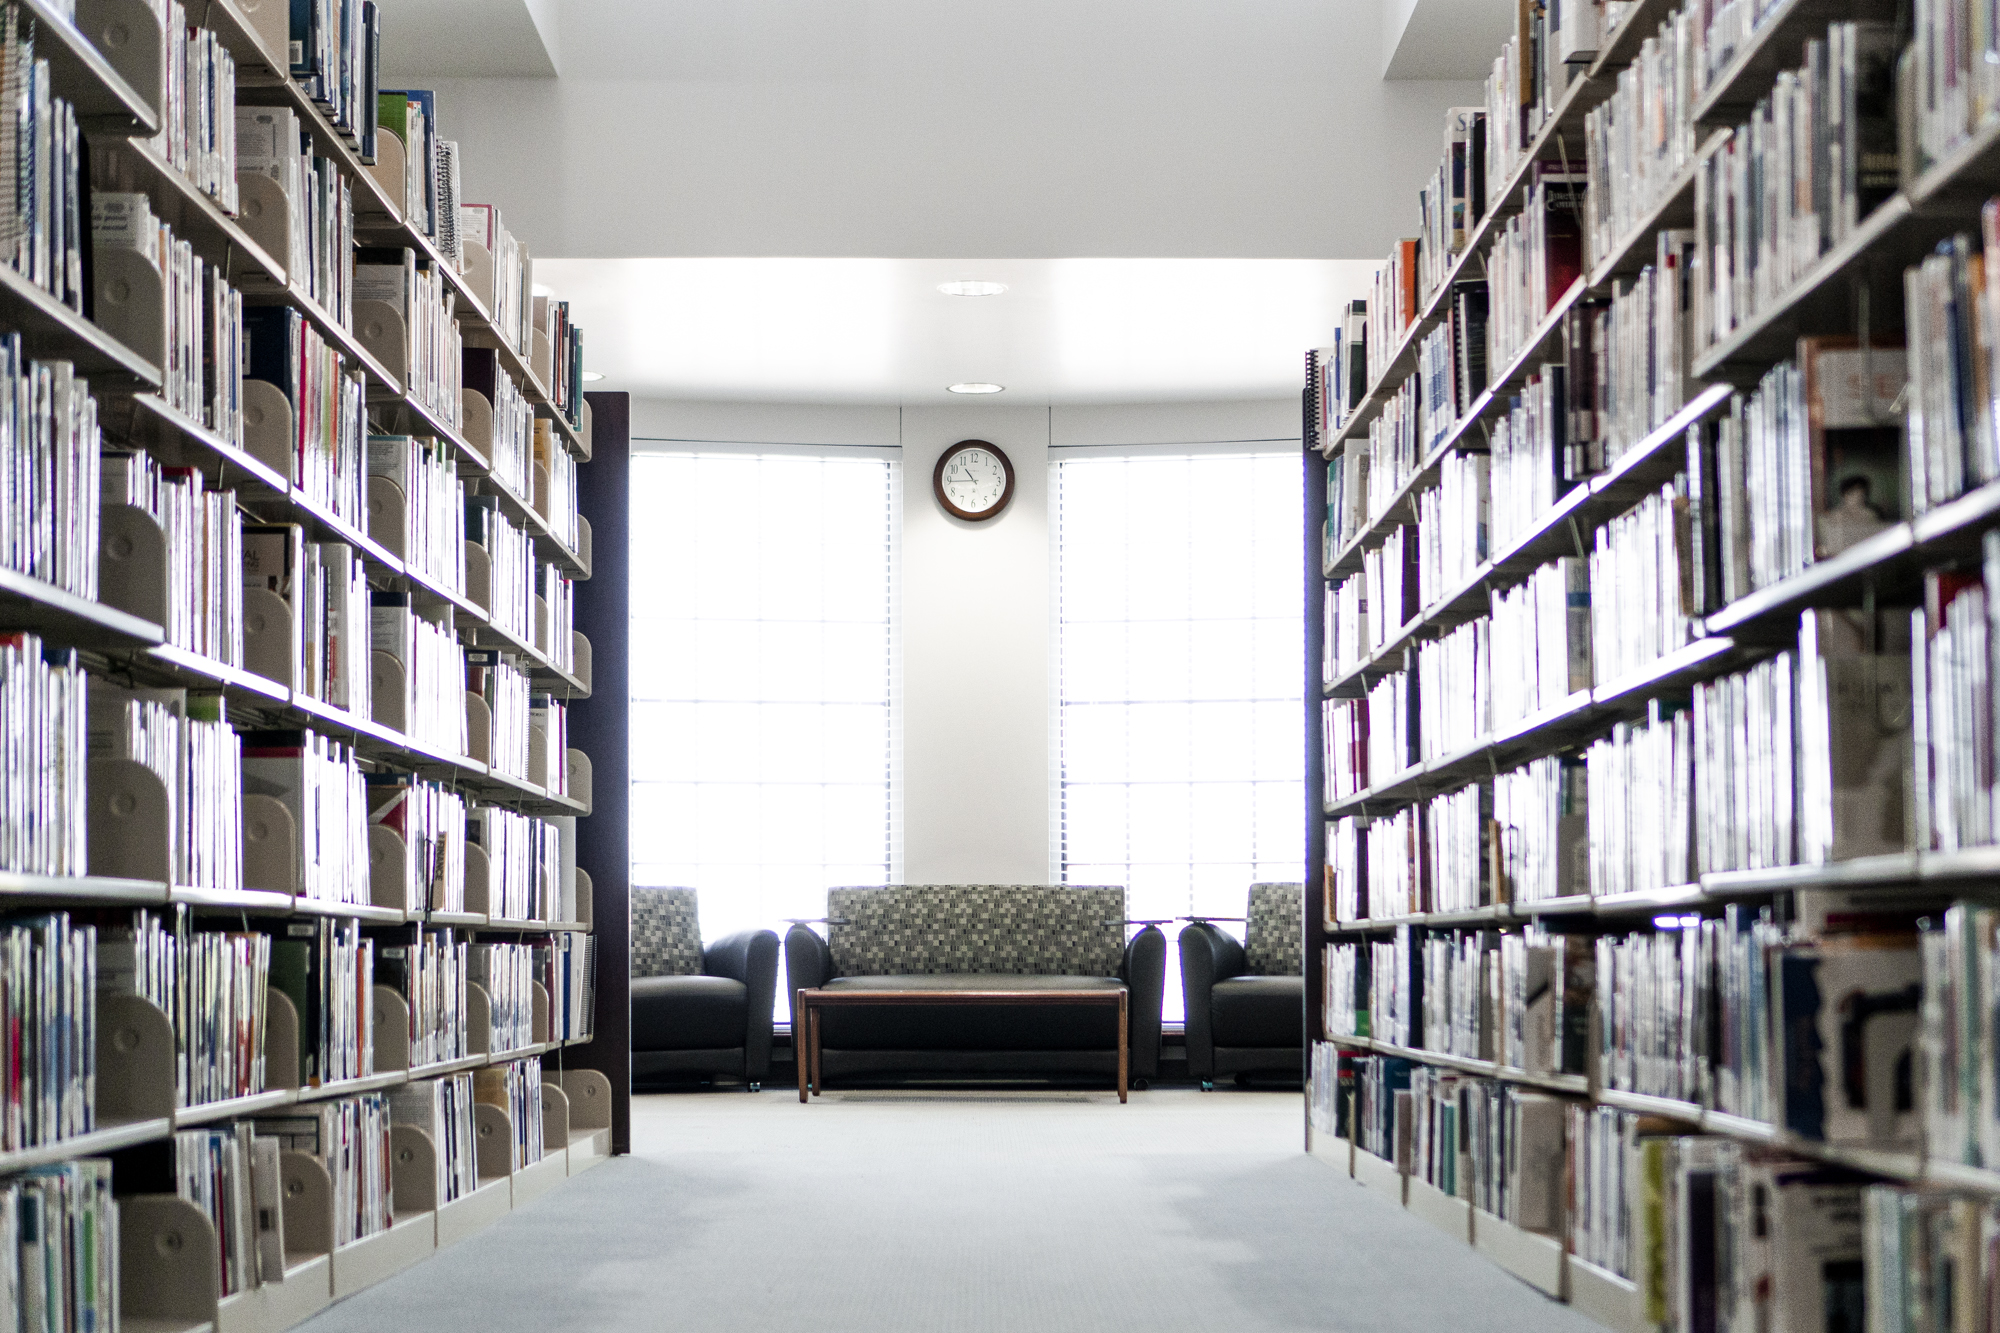 Bookshelves in Stratton Taylor Library.